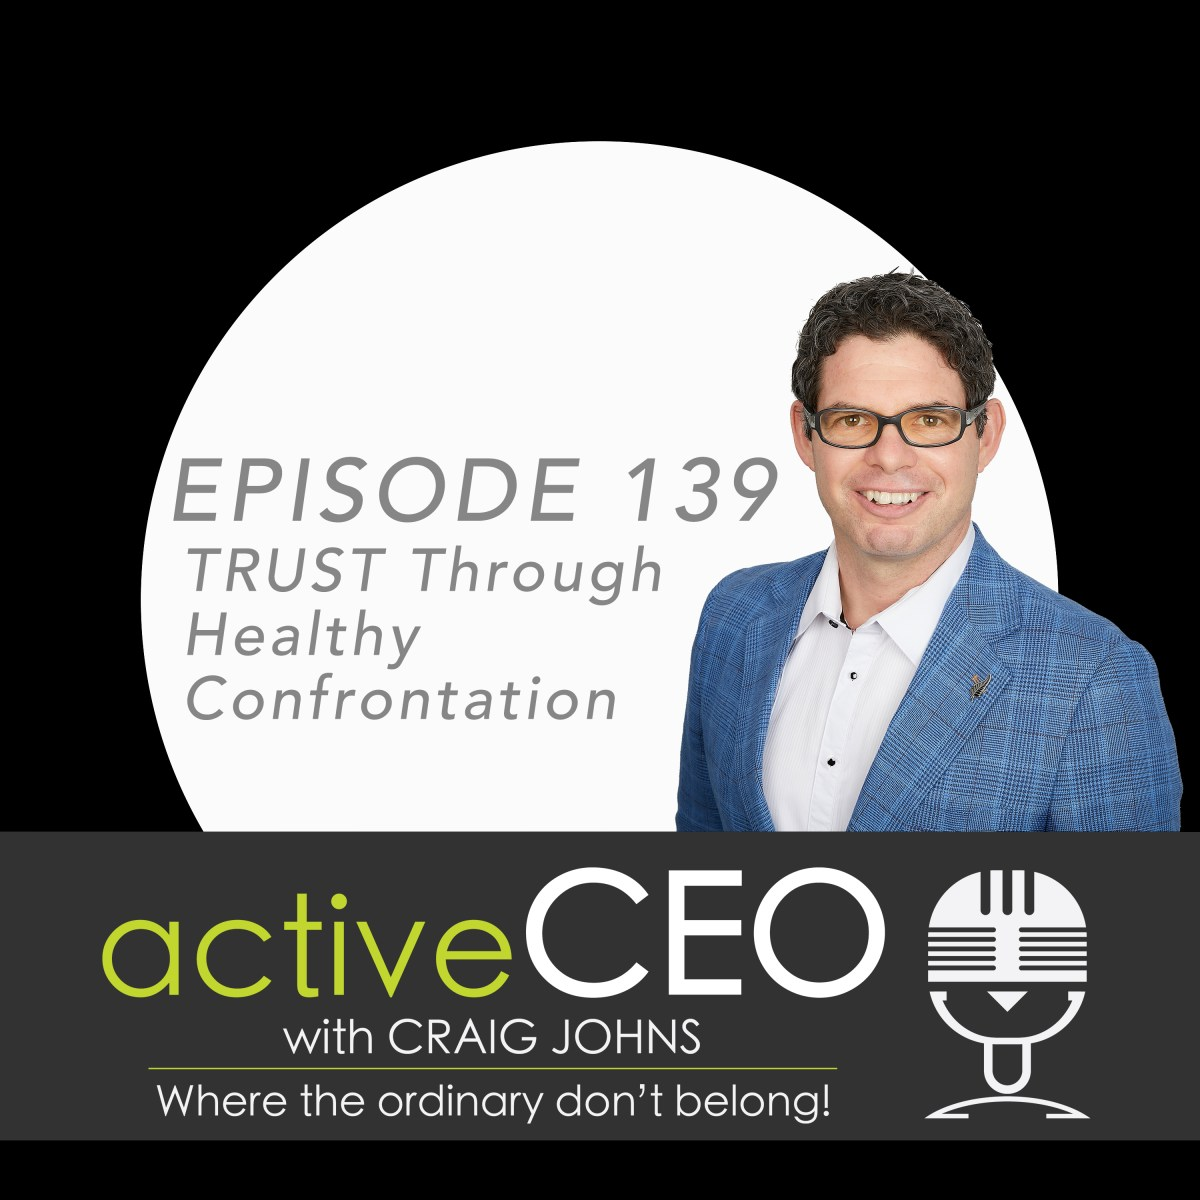 active CEO Podcast 139 Trust Through Healthy Confrontation